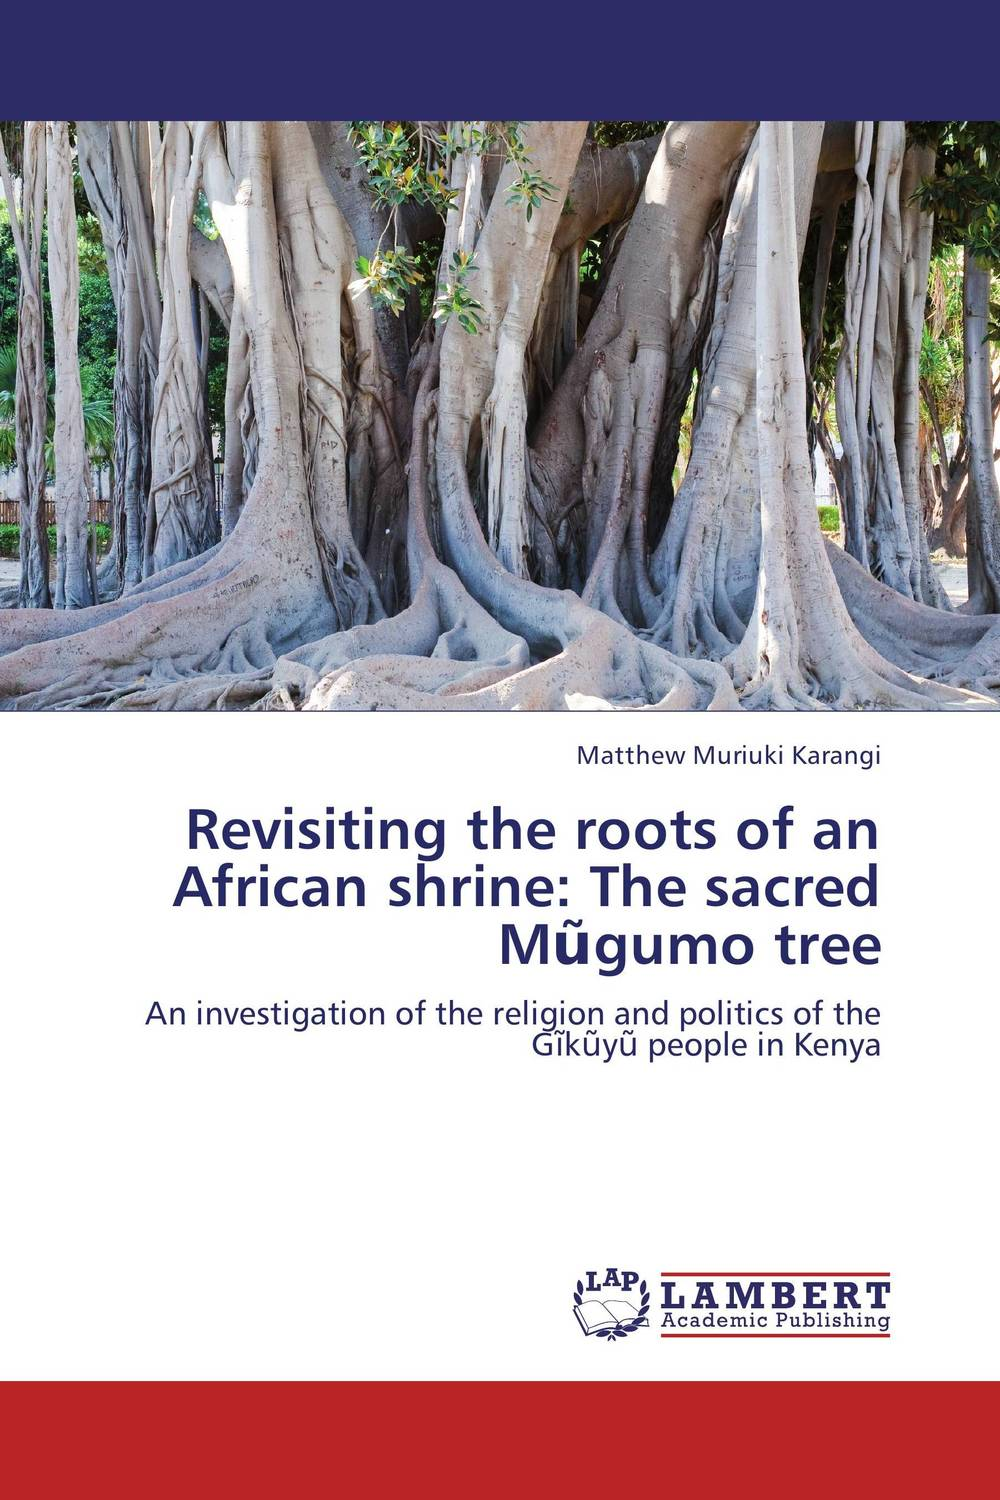 Revisiting the roots of an African shrine: The sacred Mugumo tree